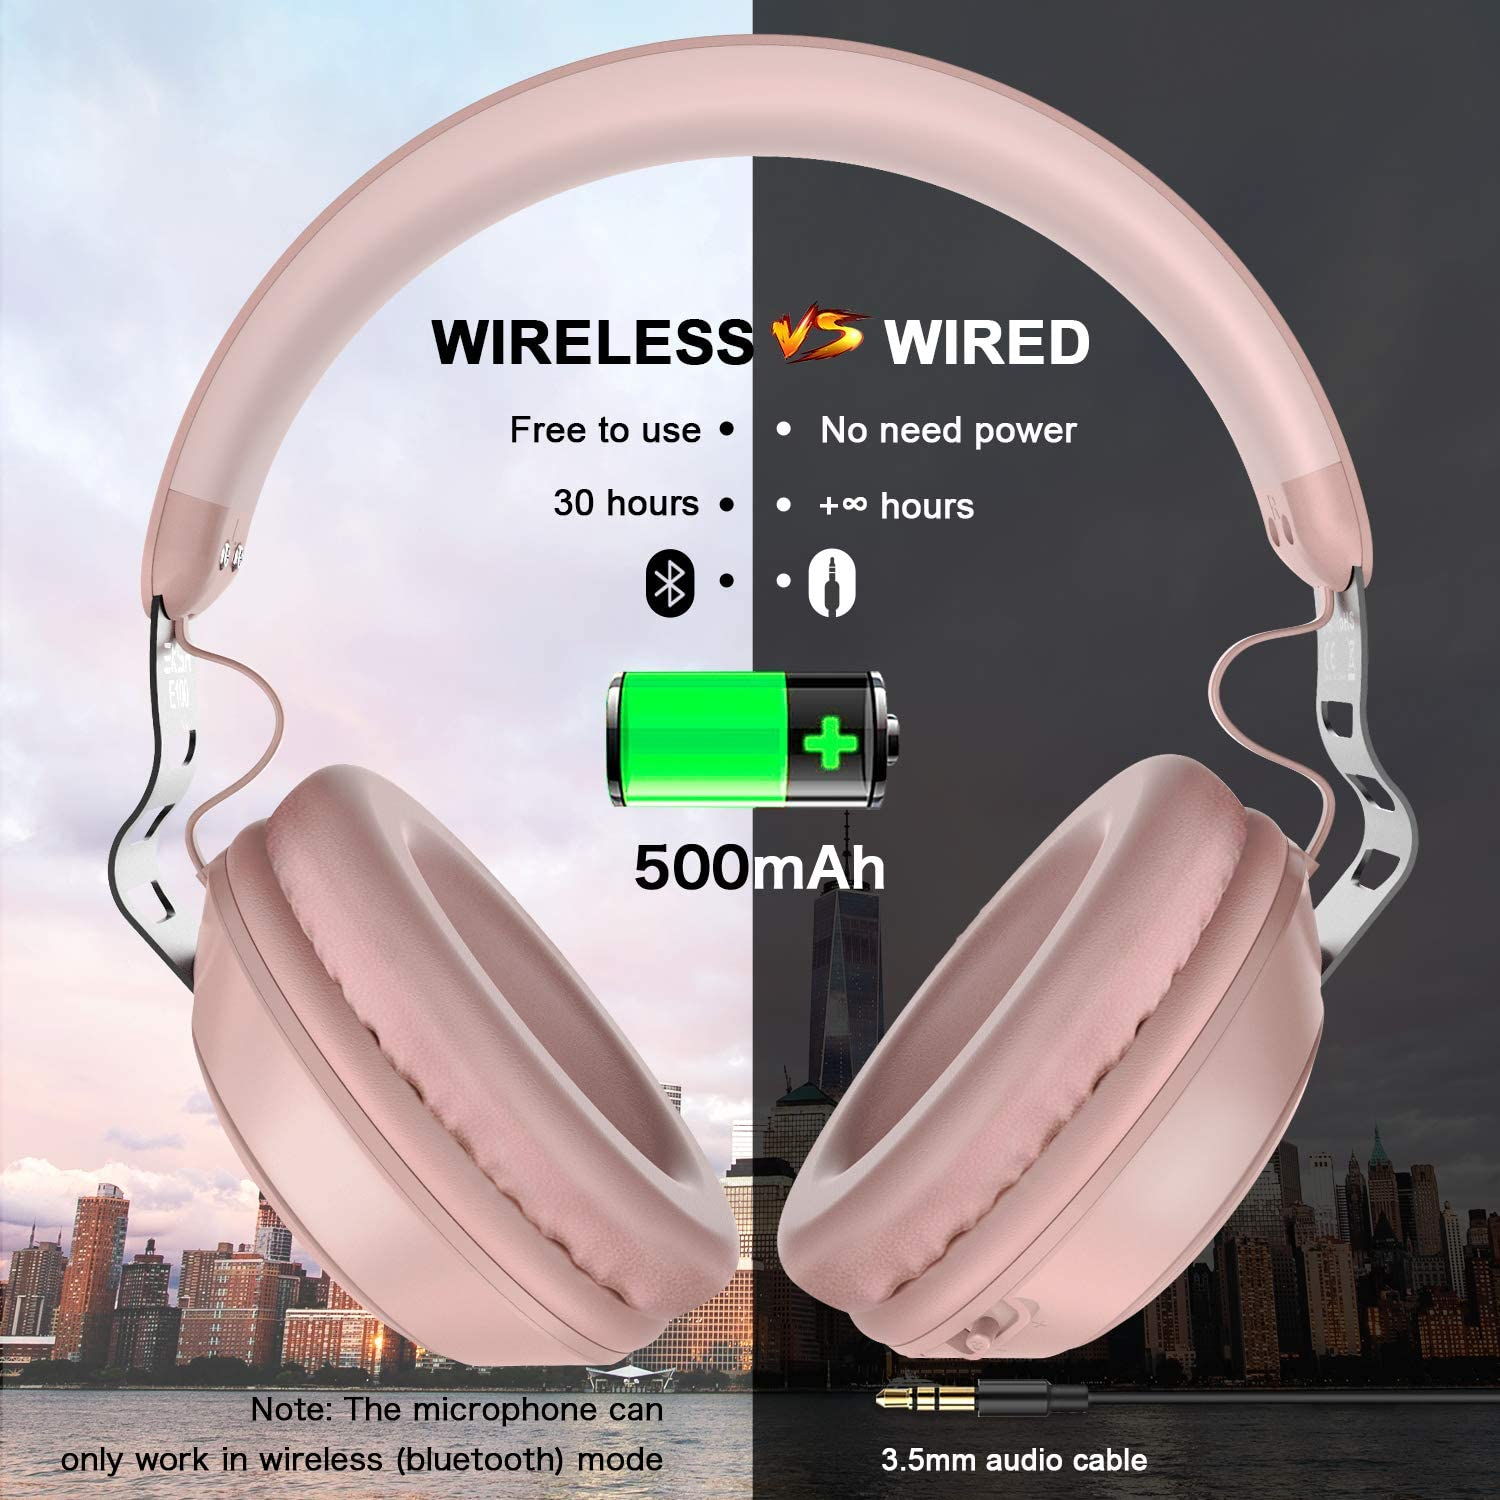 Rose Gold Eksa Over Ear Bluetooth Headphones 30 Hours Play Time Wireless Headset With Built In Microphone 40mm Driver Thumping Bass Supports Hands Free Calling And Wired Mode For Women Girls Kids Dj Headphones